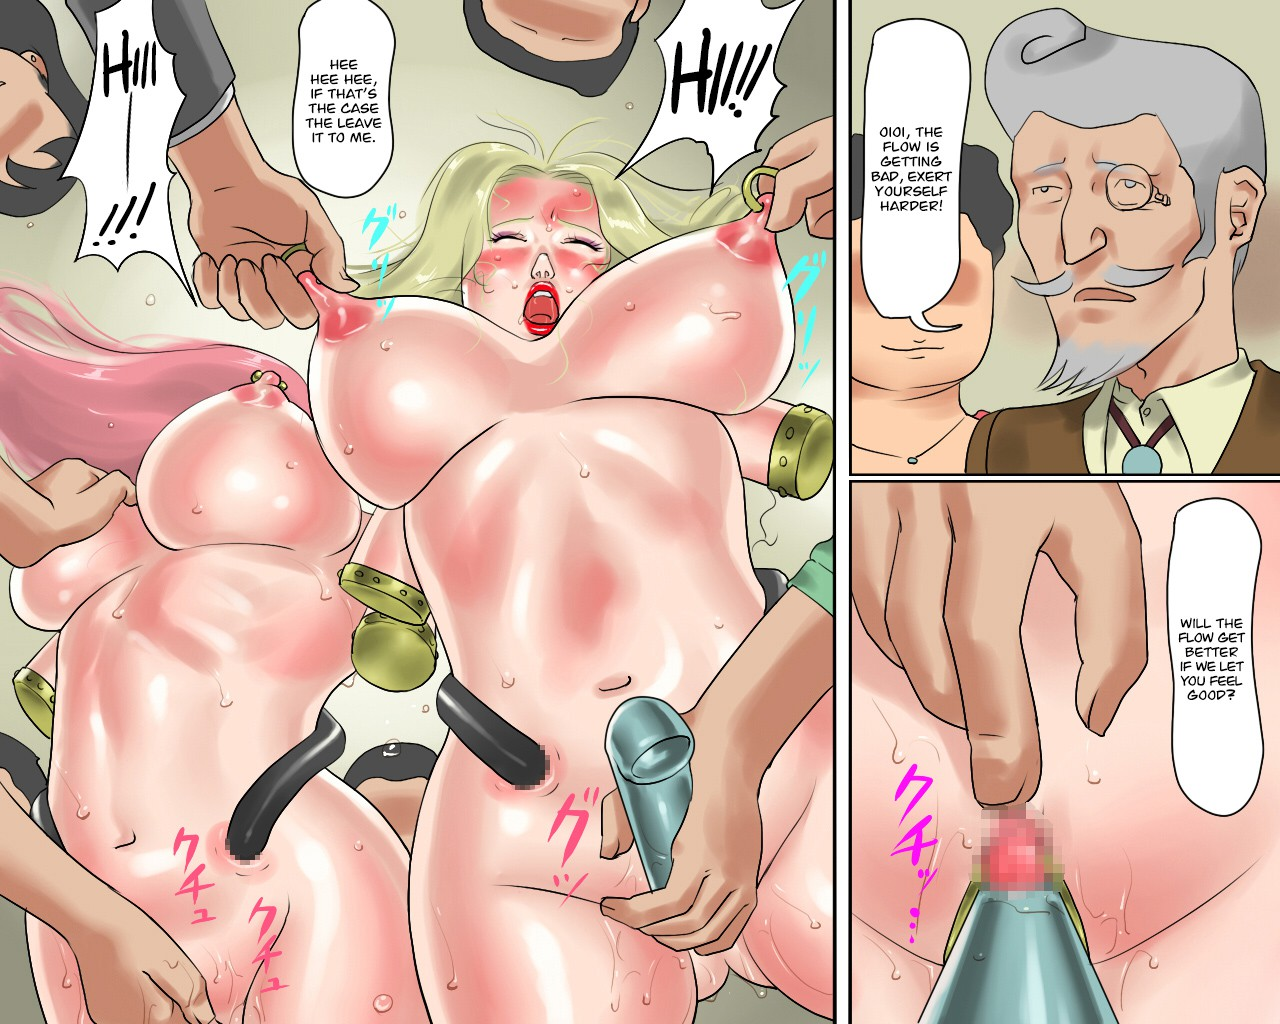 Slave hentai sexy images